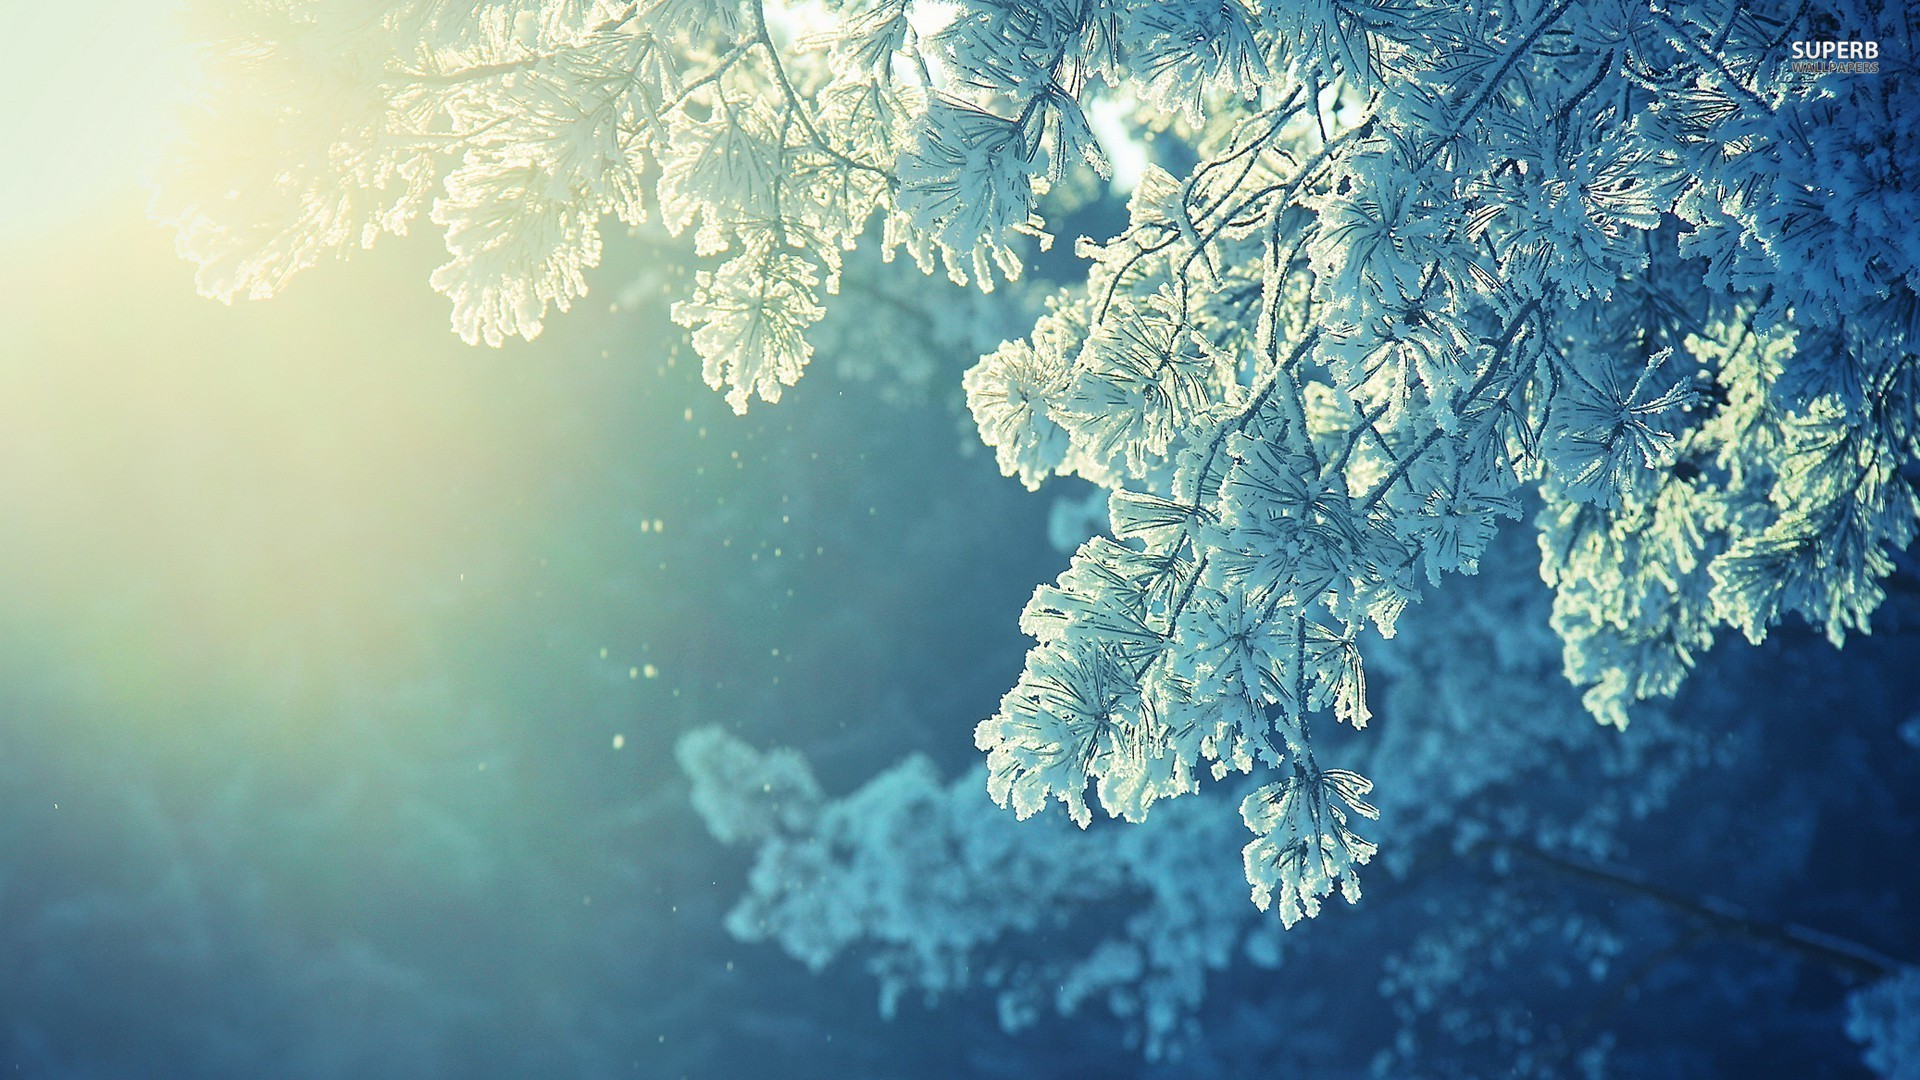 Frosty tree wallpaper 1920x1080